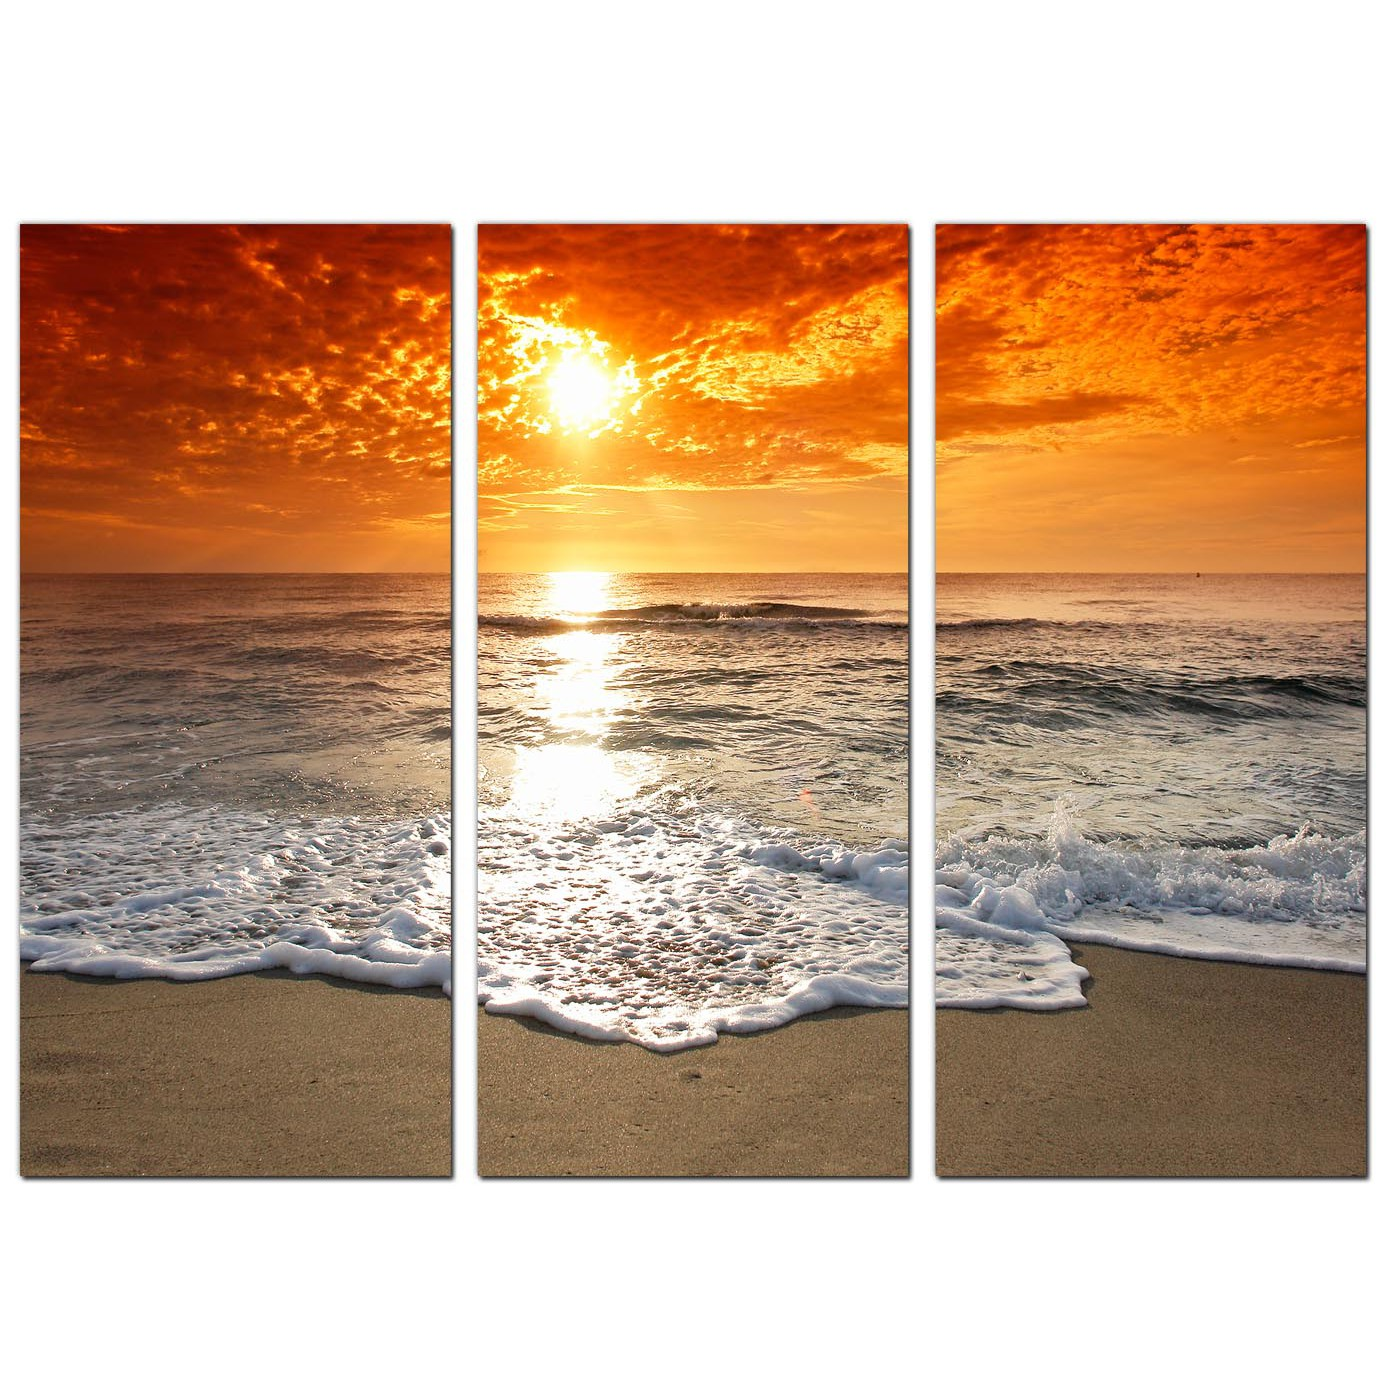 Cheap beach sunset canvas prints uk set of 3 for your for 3 by 3 prints